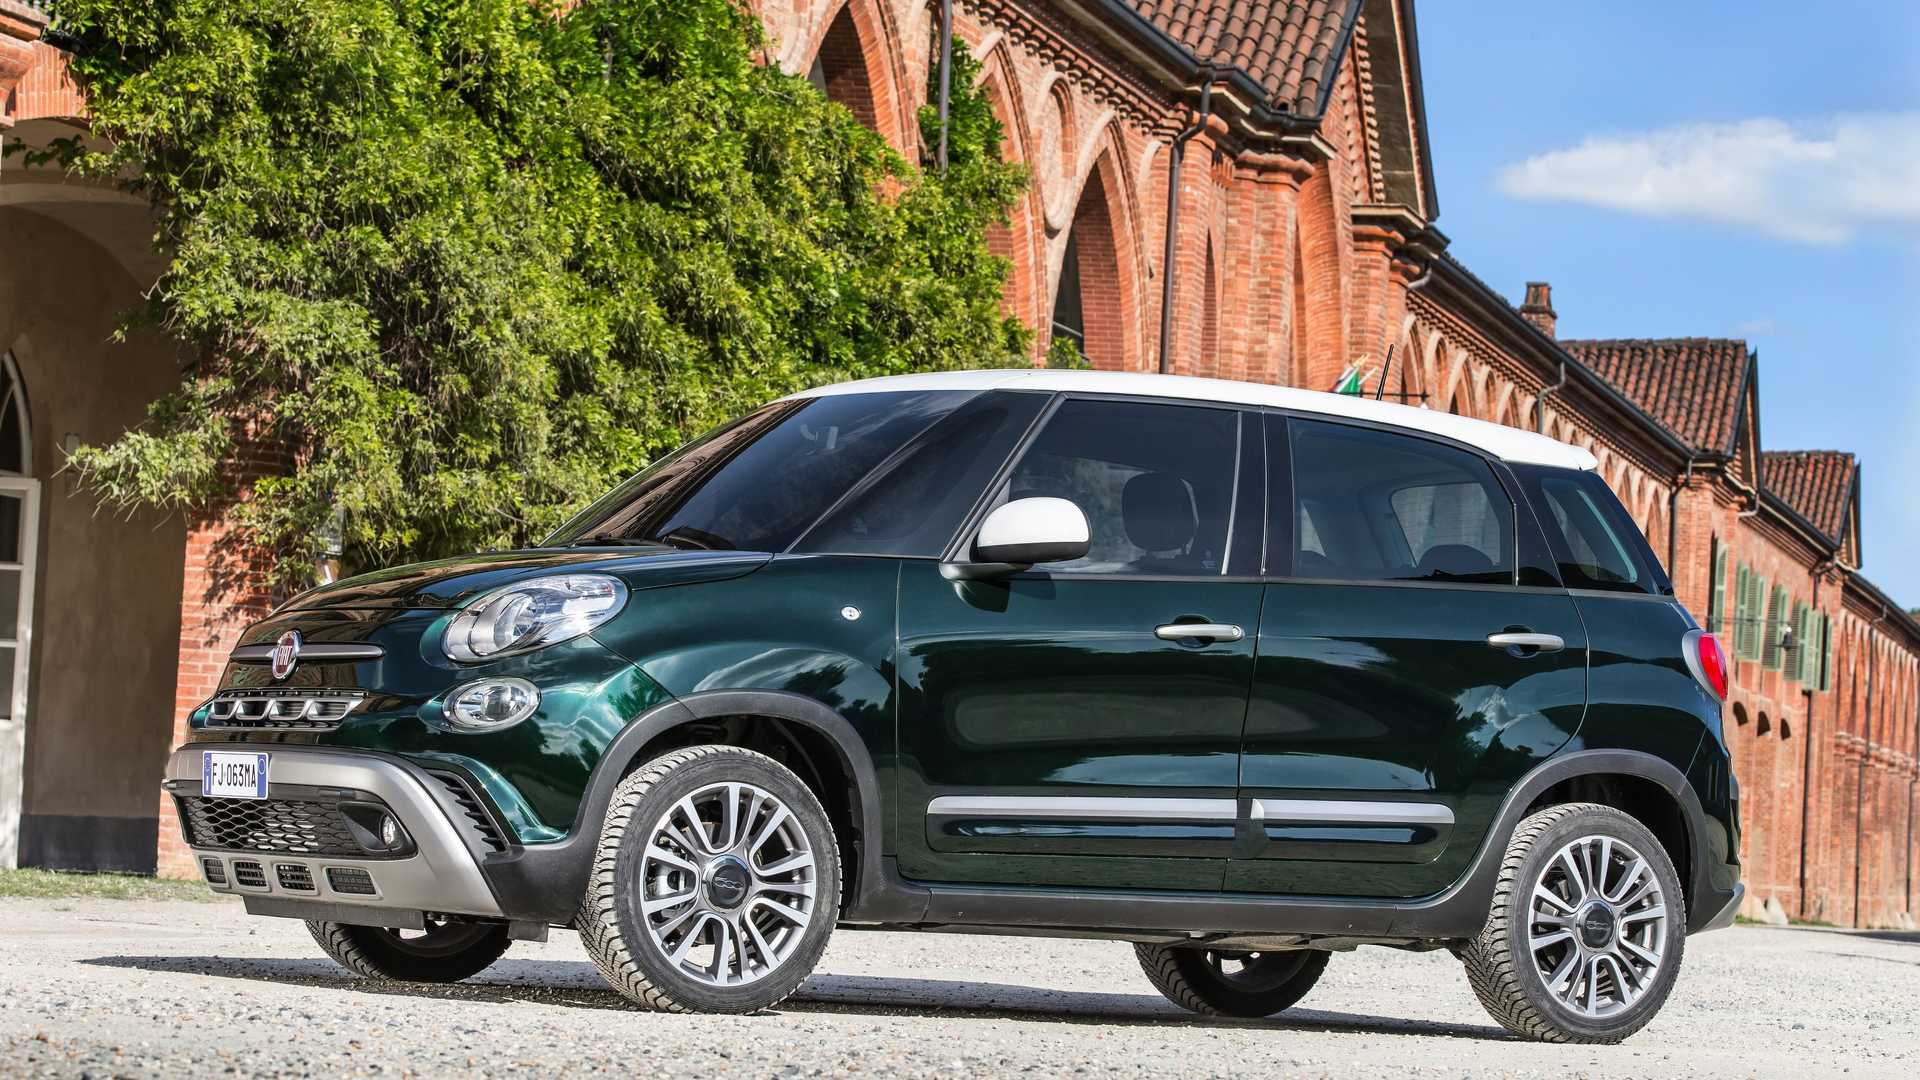 2018_Fiat_500L_cross_facelift_03